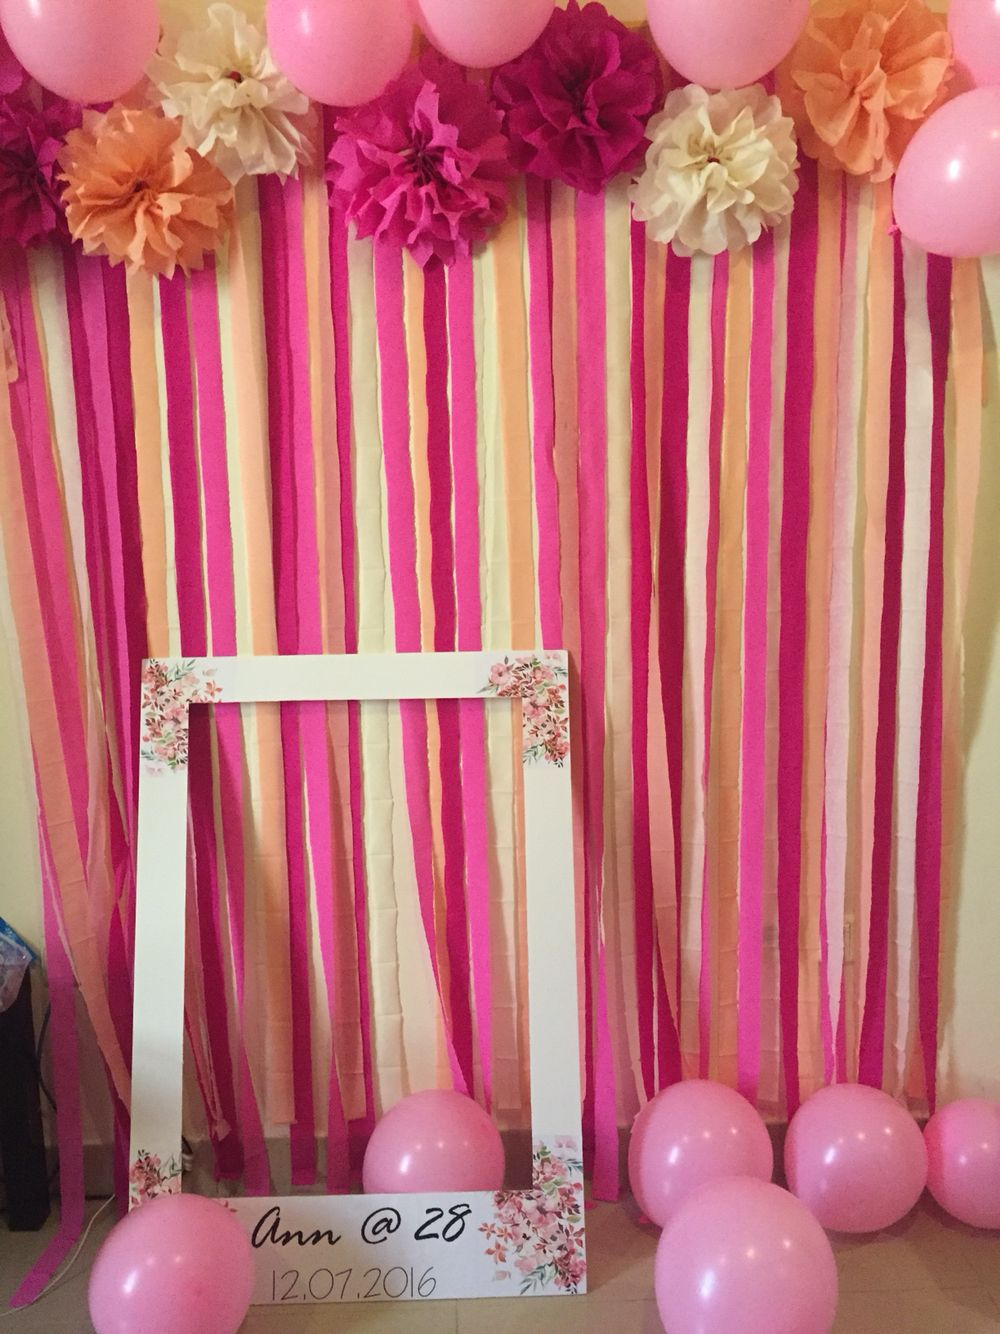 Diy Photo Backdrop For My Friend S 28th Birthday Party